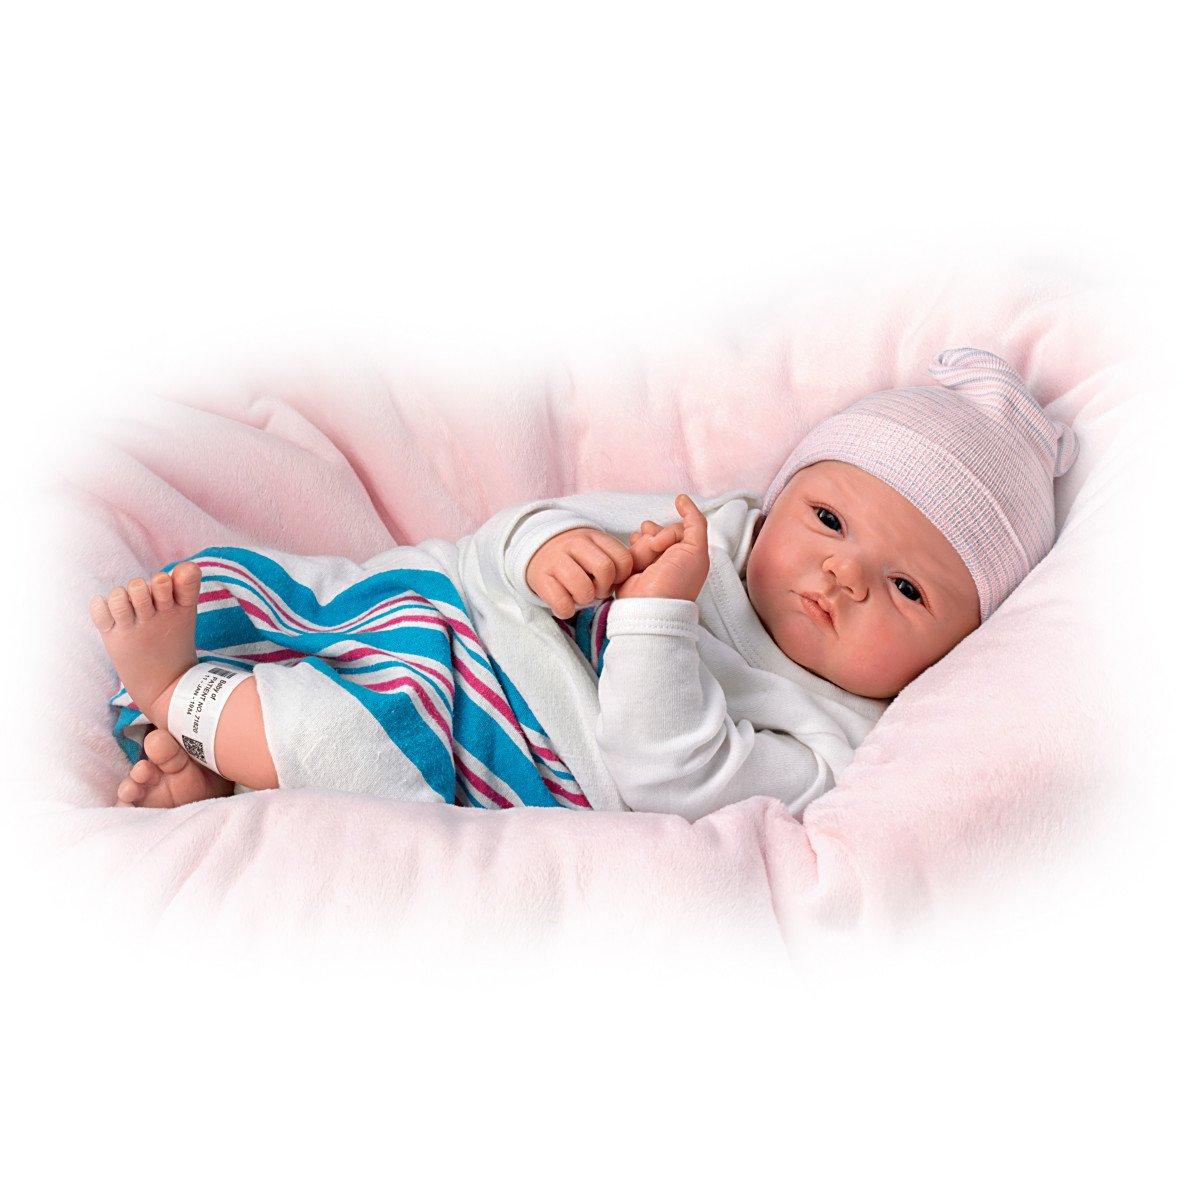 The Ashton-Drake Galleries Sandy Faber Welcome To The World Newborn Baby Girl Doll, 18-Inches by The Ashton-Drake Galleries